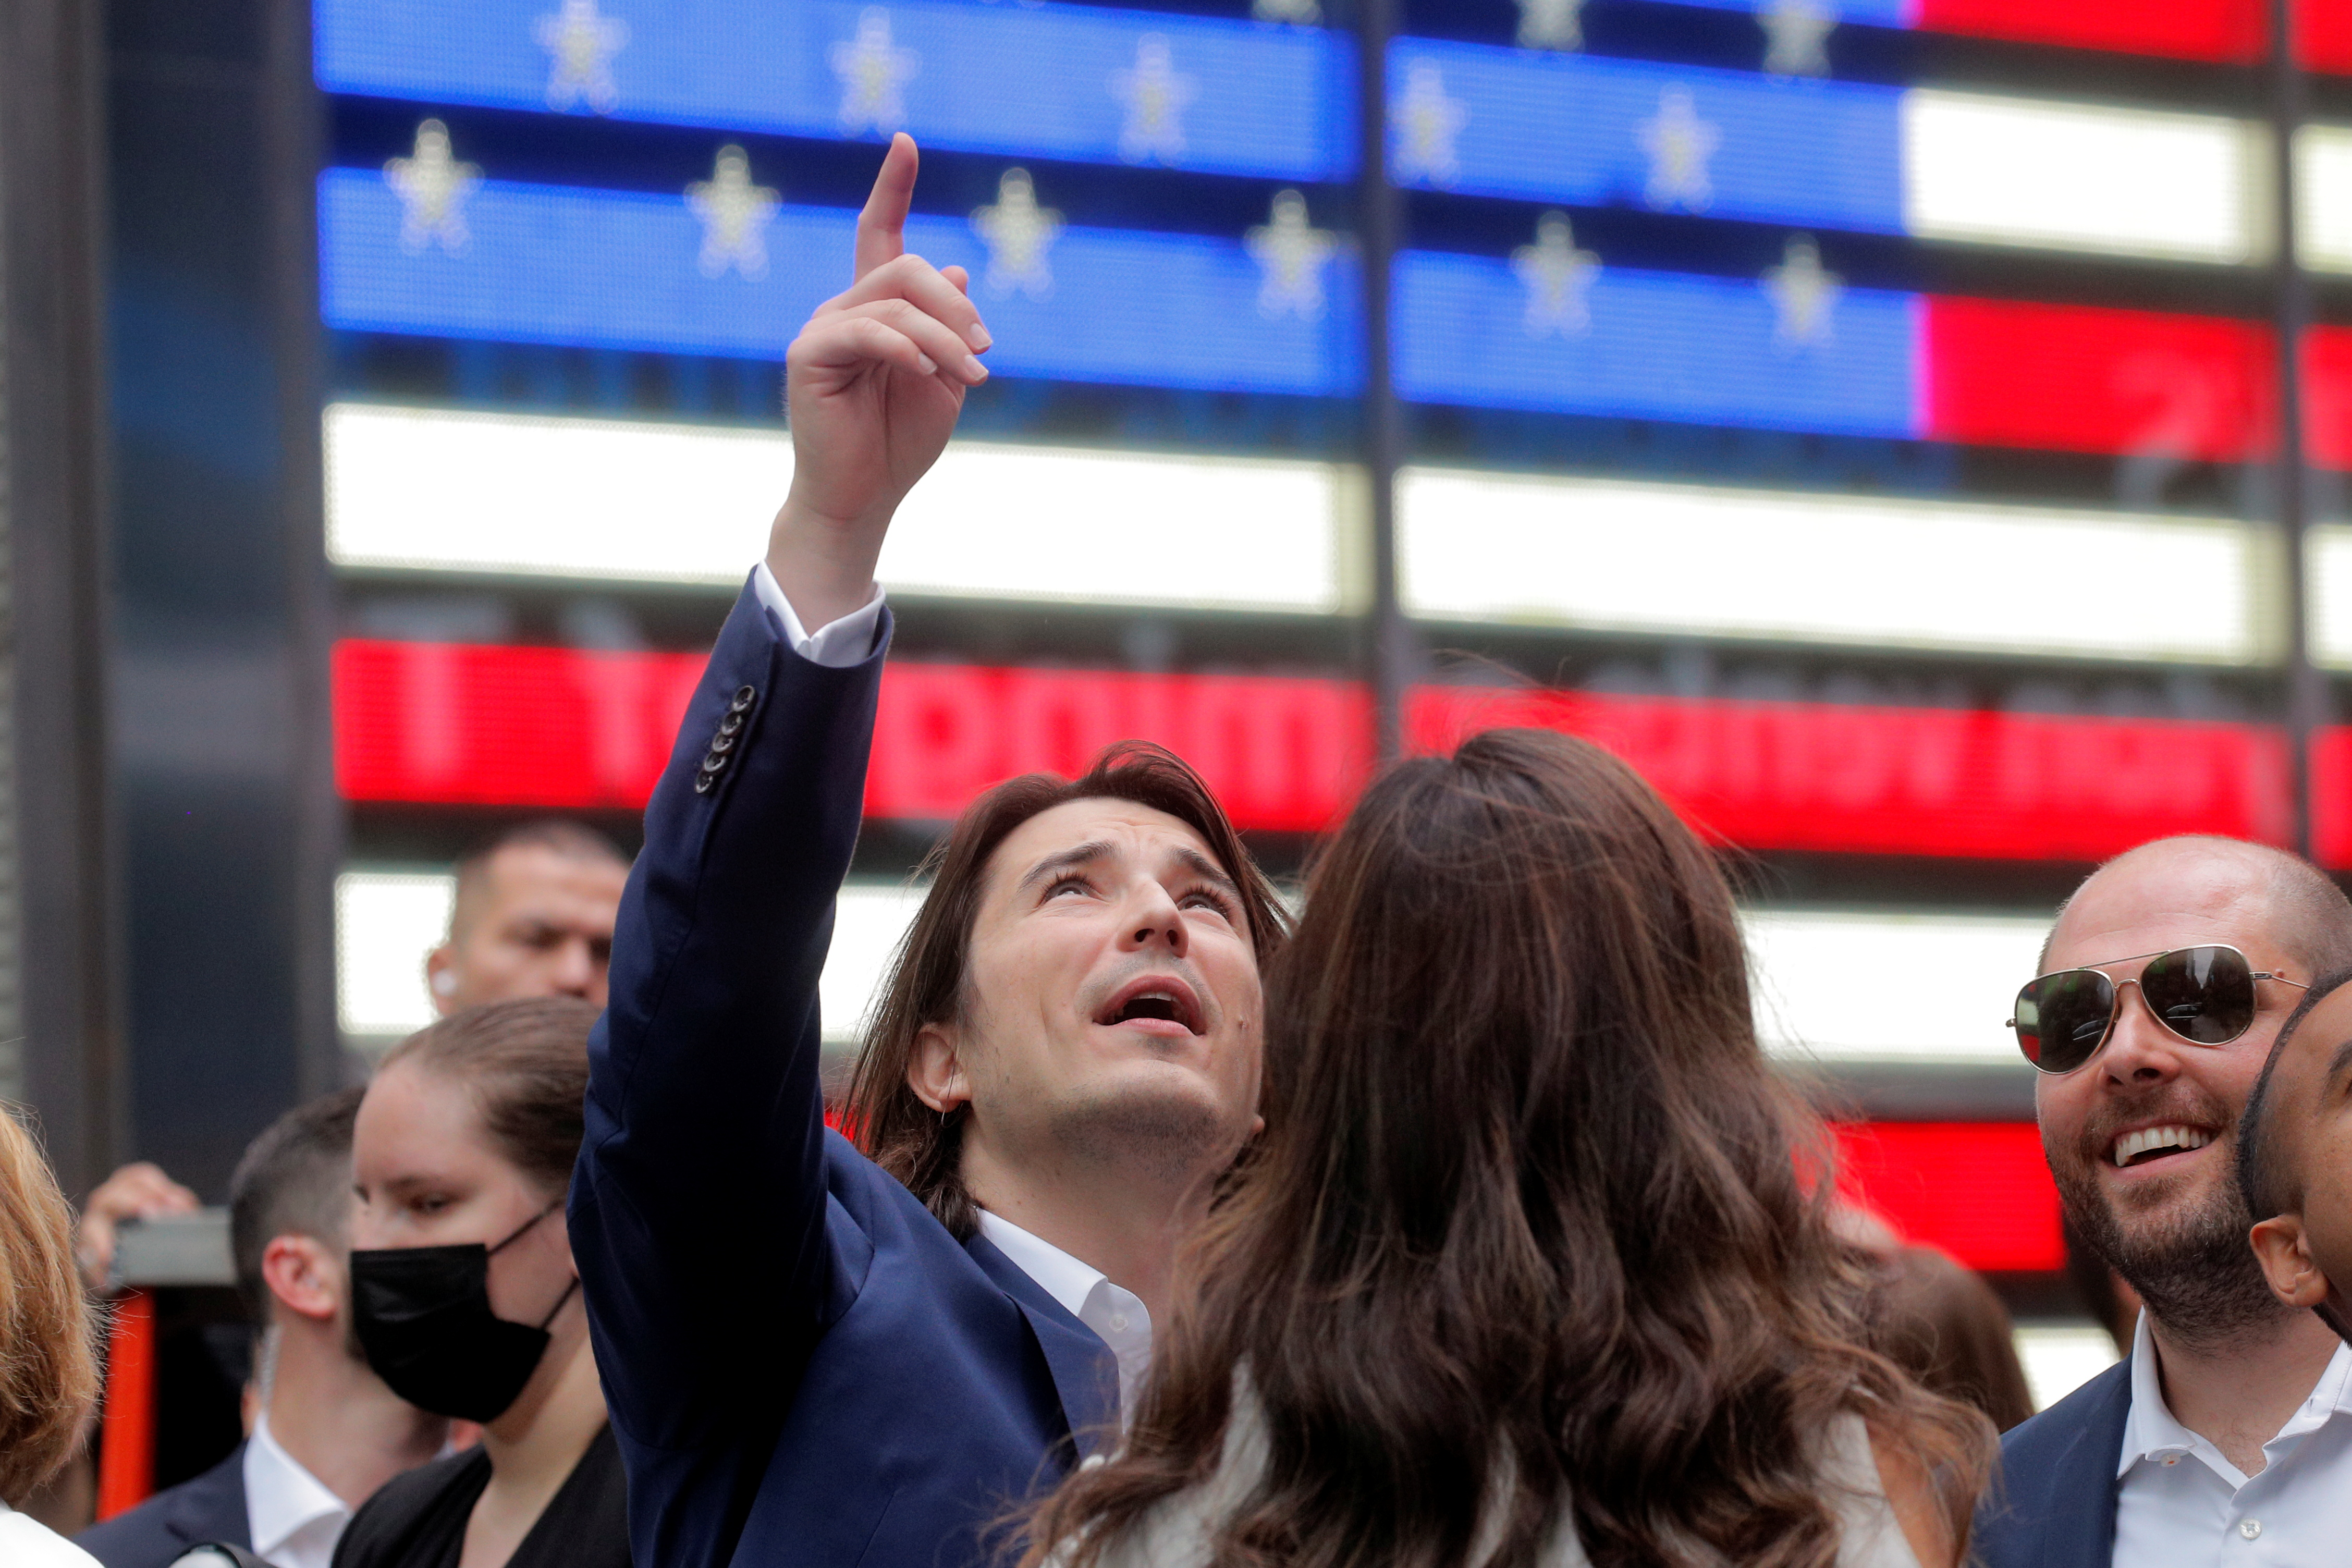 Vlad Tenev, CEO and co-founder Robinhood Markets, Inc., attends his company's IPO at the Nasdaq Market site in Times Square in New York City, U.S., July 29, 2021.  REUTERS/Brendan McDermid